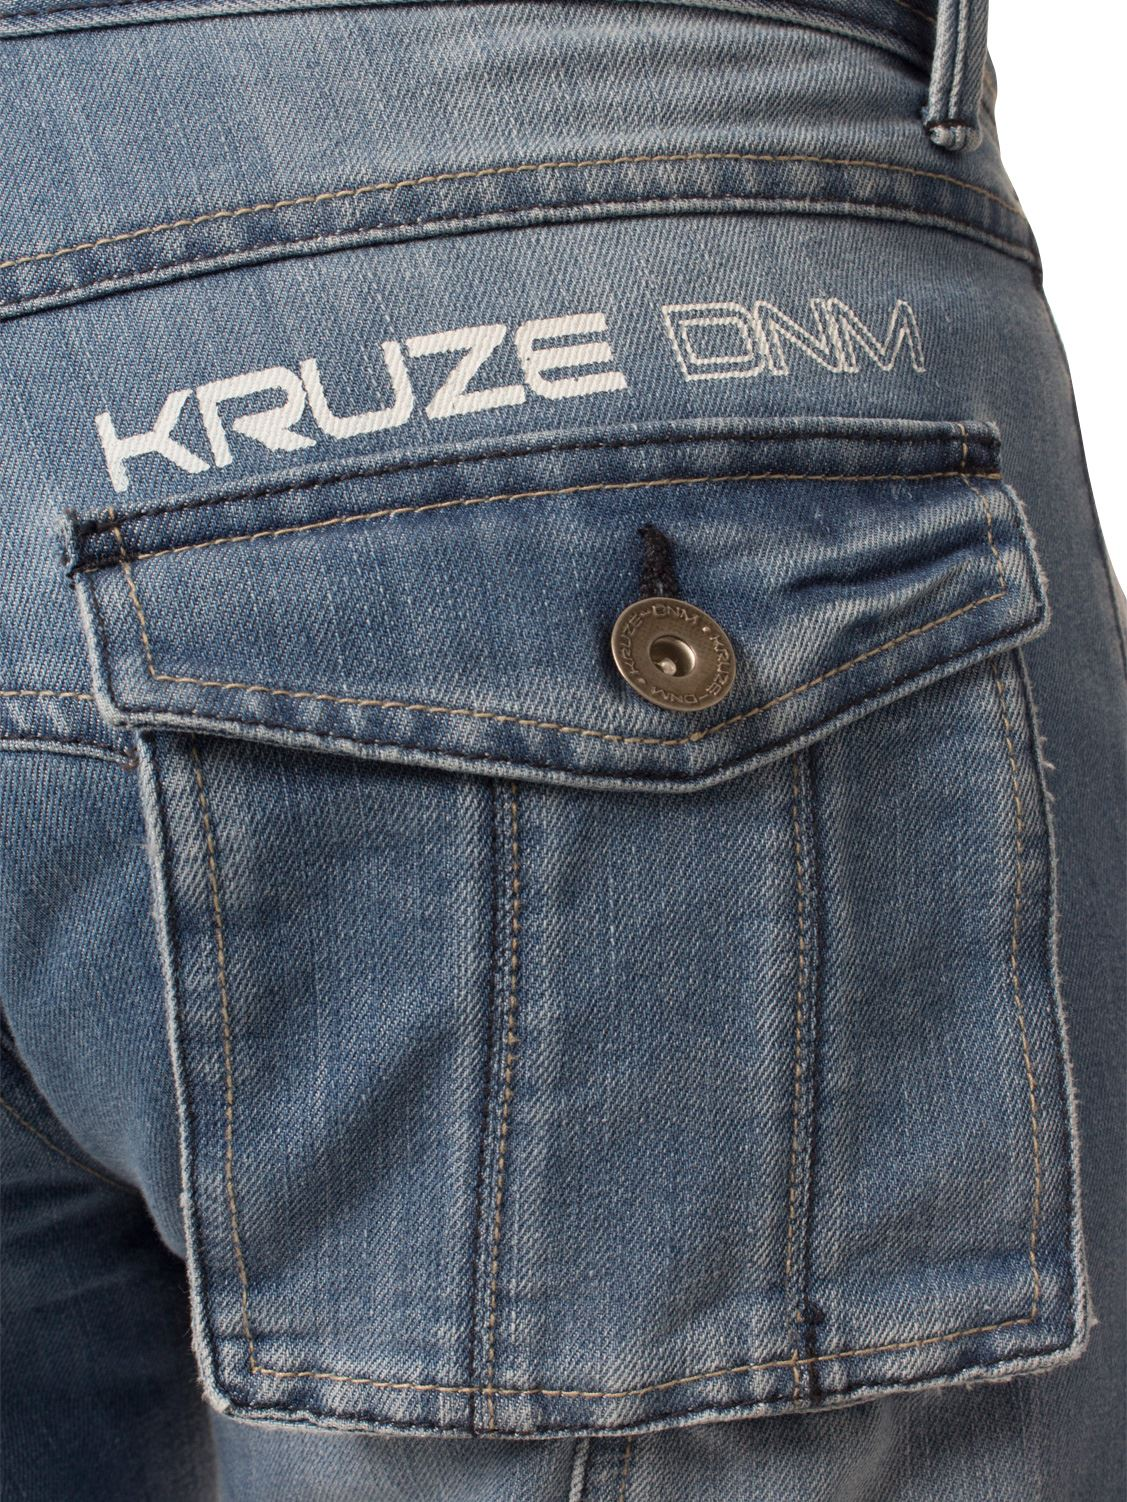 KRUZE-Mens-Combat-Jeans-Casual-Cargo-Work-Pants-Denim-Trousers-All-Waist-Sizes thumbnail 9